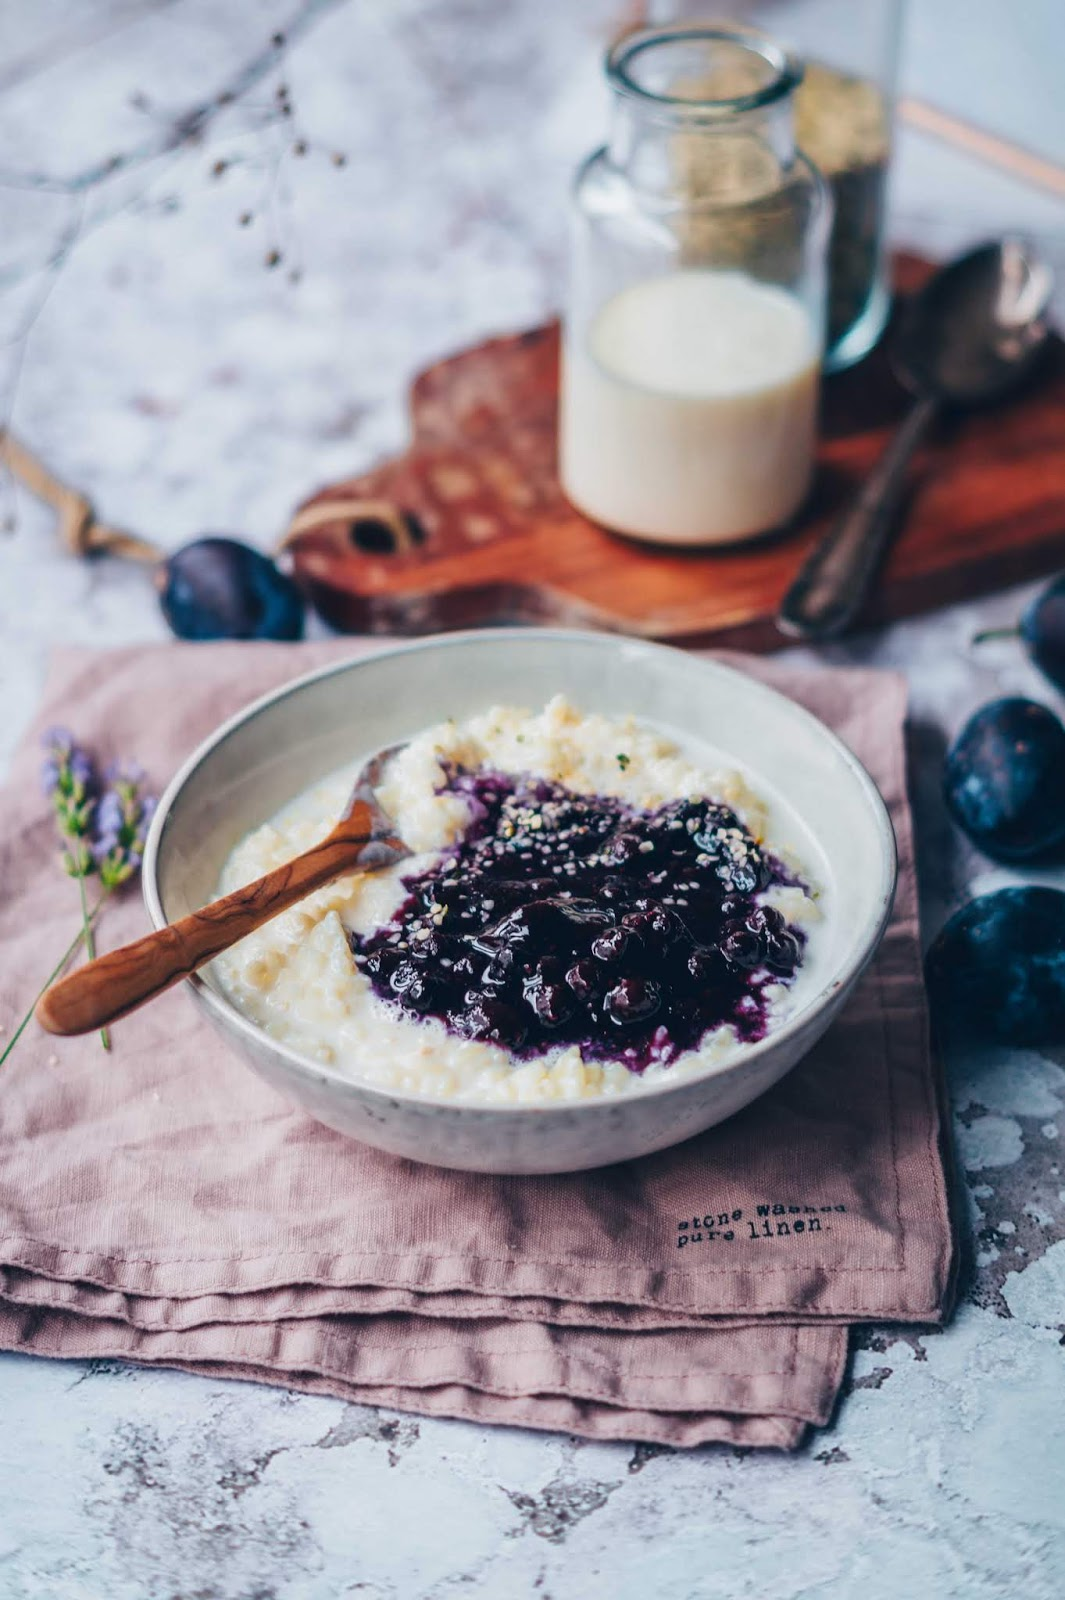 Vanilla Rice Pudding with Lavender Blueberry Compote. Need more recipes? 20 Tasty And Nourishing, Yet Quick Vegan Breakfast Recipes Ideas breakfast vegan | vegan food breakfast | vegan breakfast food | vegan healthy breakfast | vegan breakfast ideas #breakfast #vegan #veganideas #tasty